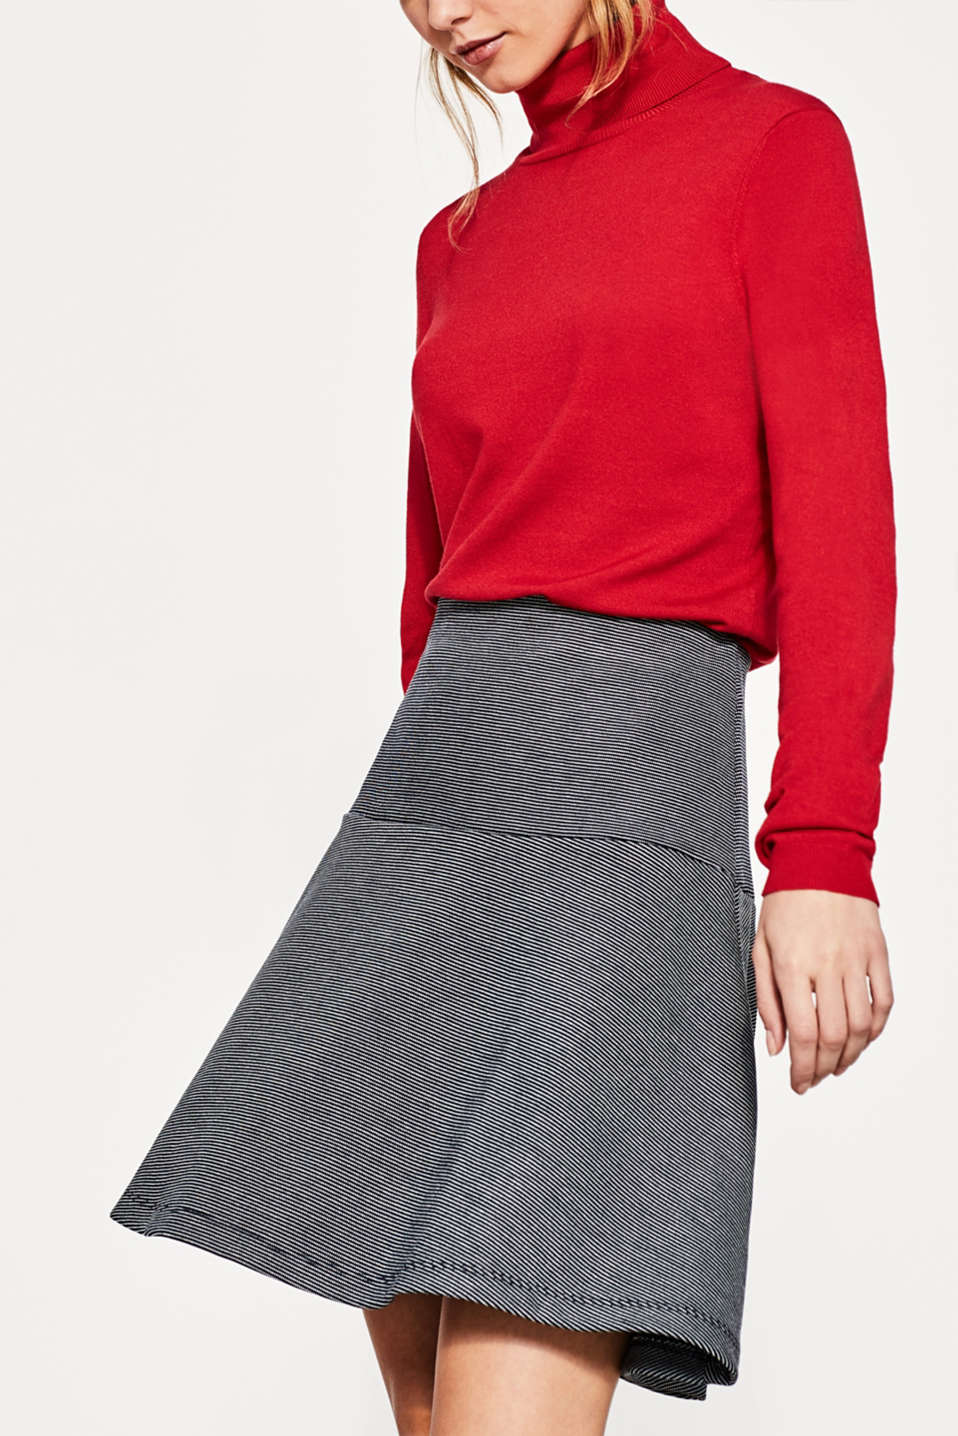 Esprit - Godet skirt with a fine striped texture